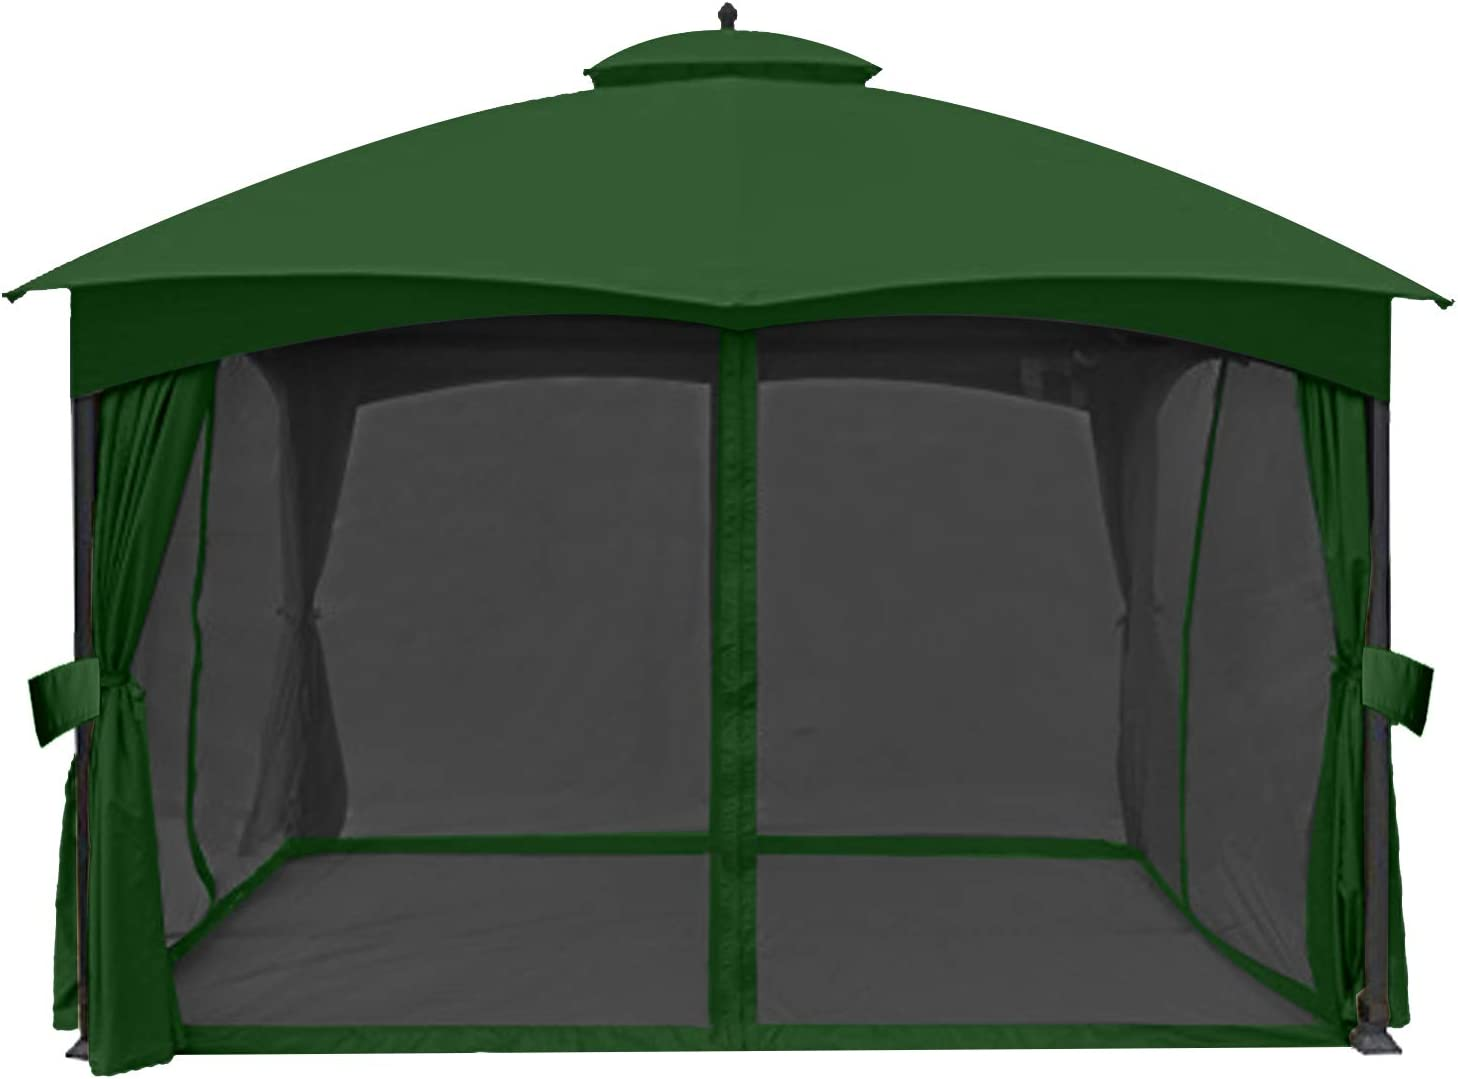 ABCCANOPY Universal 10' x 12' Gazebo Replacement Mosquito Netting Walls (Forest Green)